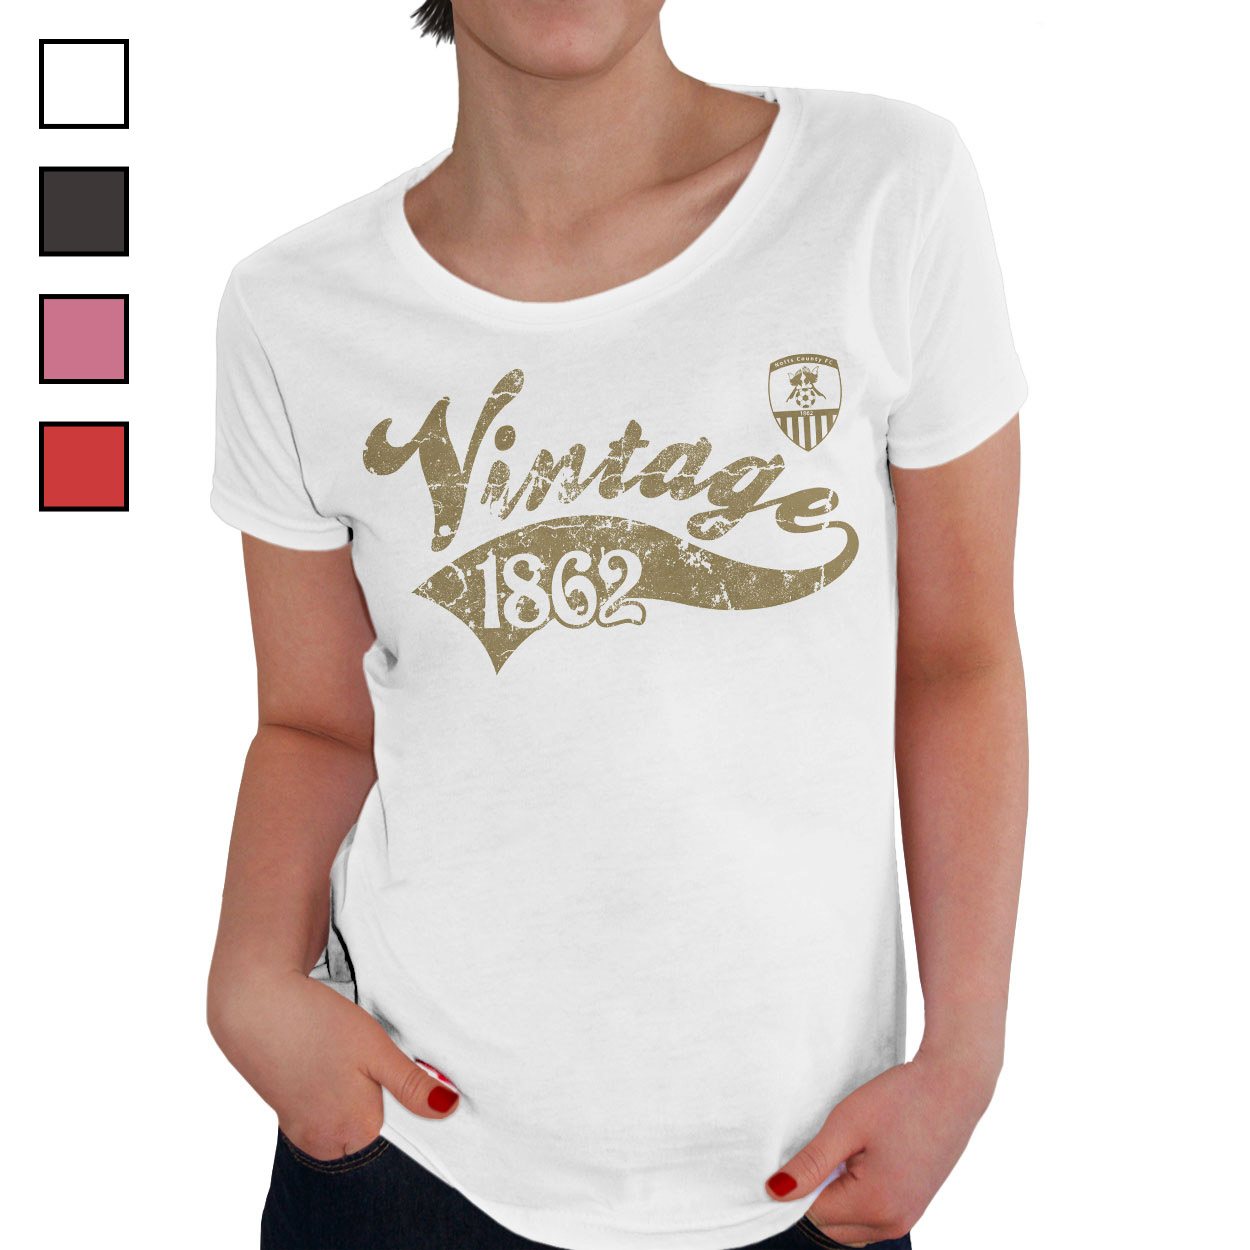 Notts County FC Ladies Vintage T-Shirt